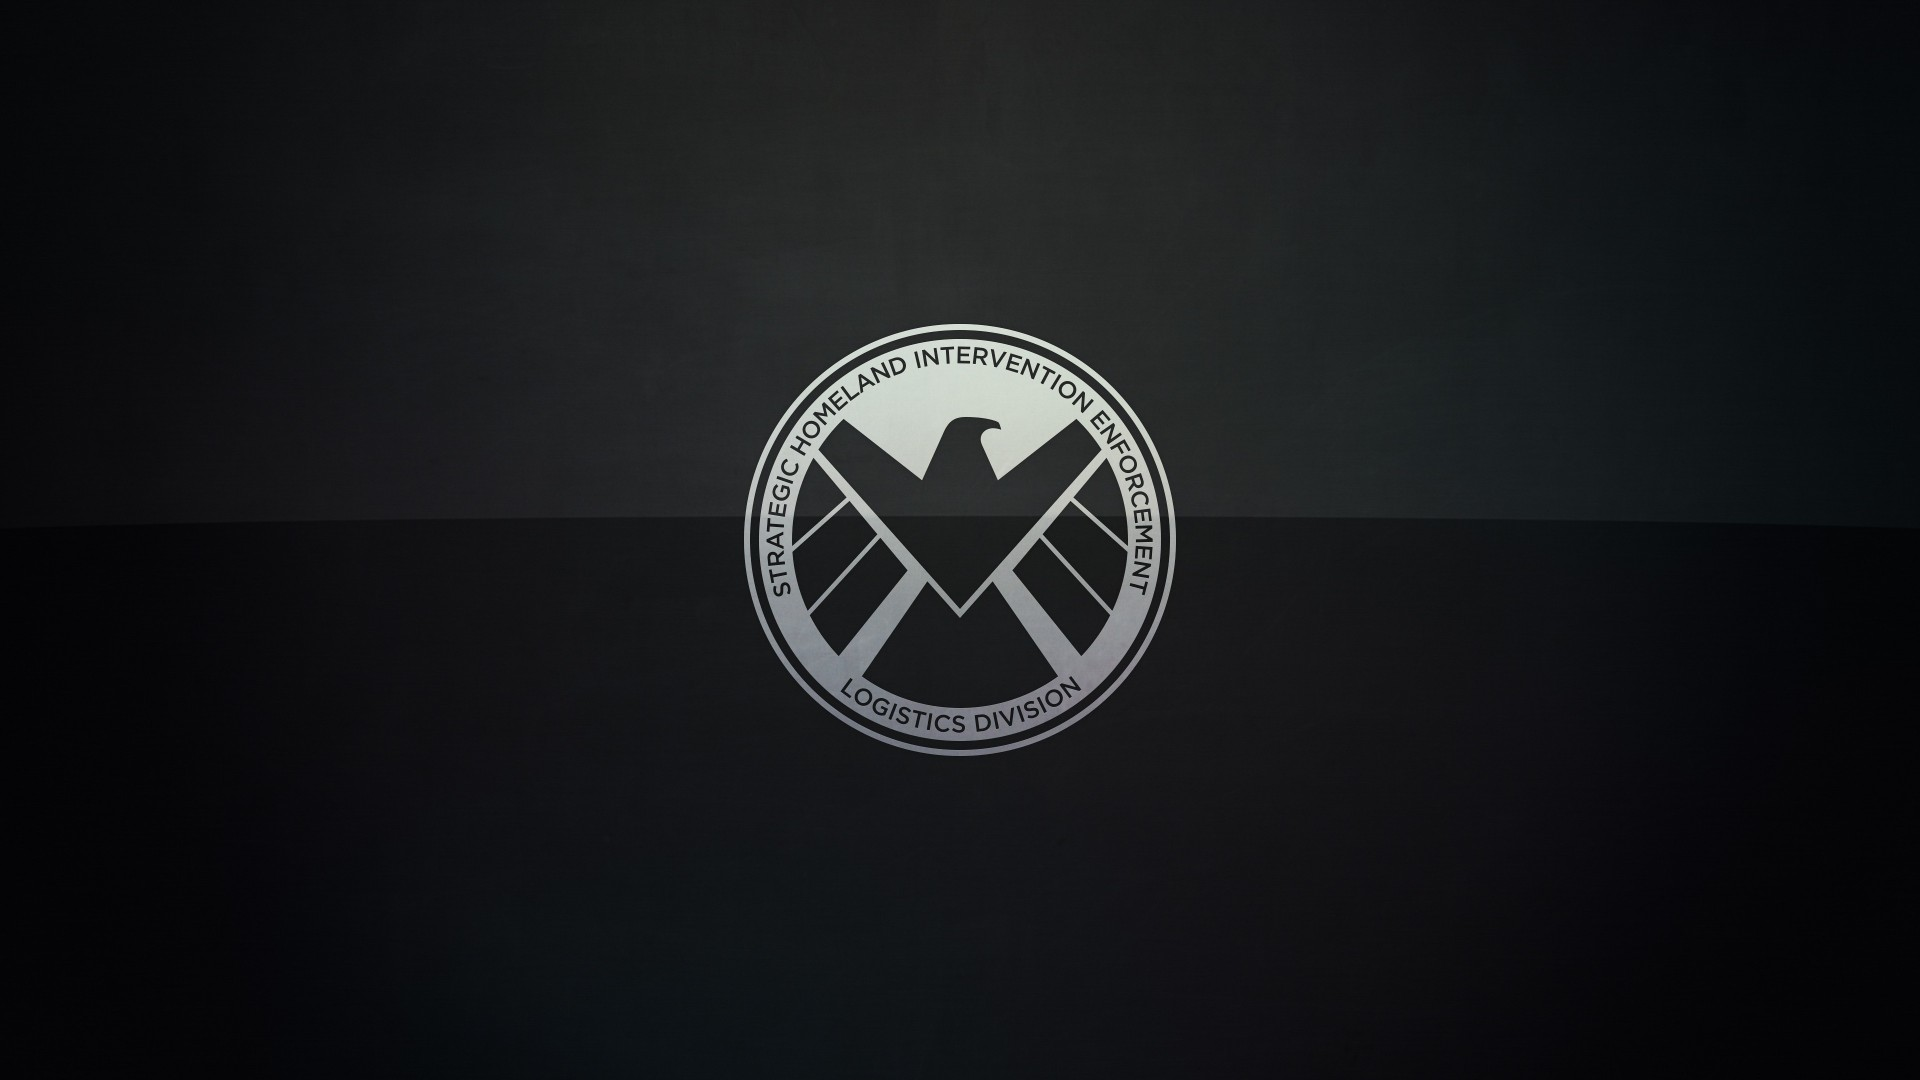 S Logo Wallpaper Free Download S.H.I.E.L.D - HD Wallp...